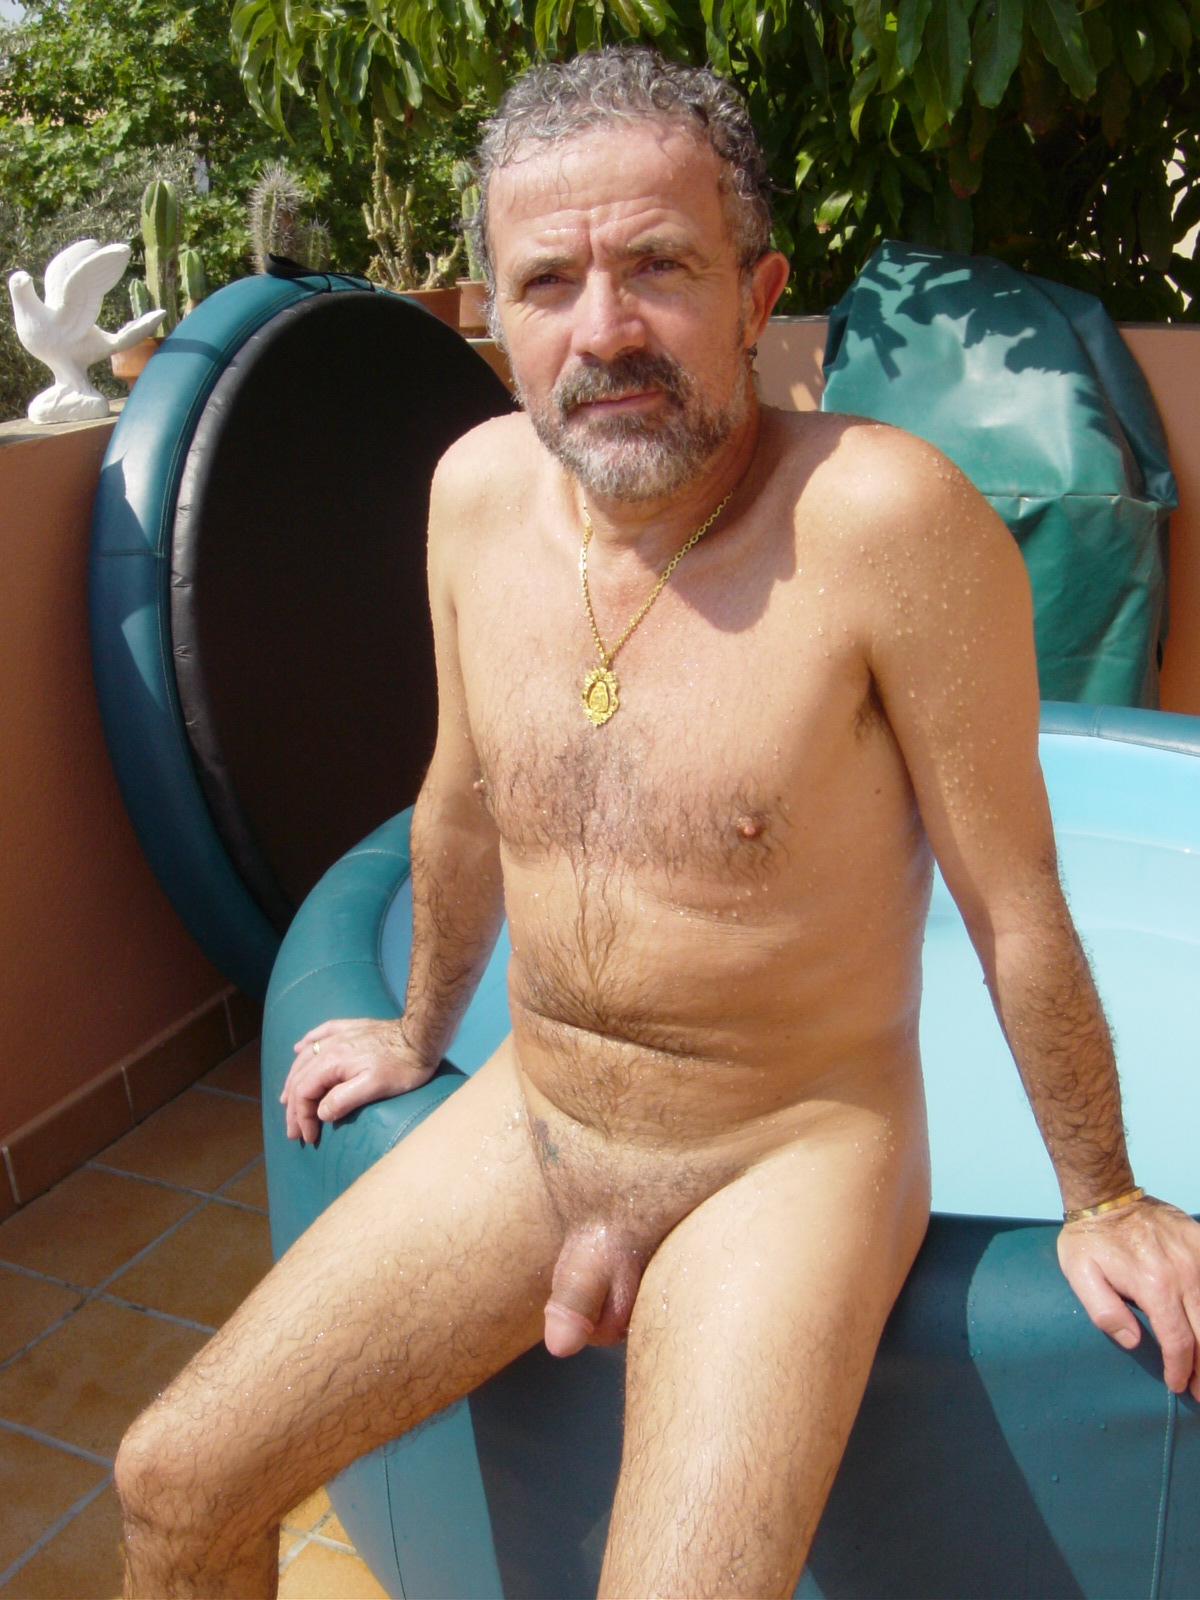 Hairy Naked Dads Senior Gay Silver Daddies Big Hot